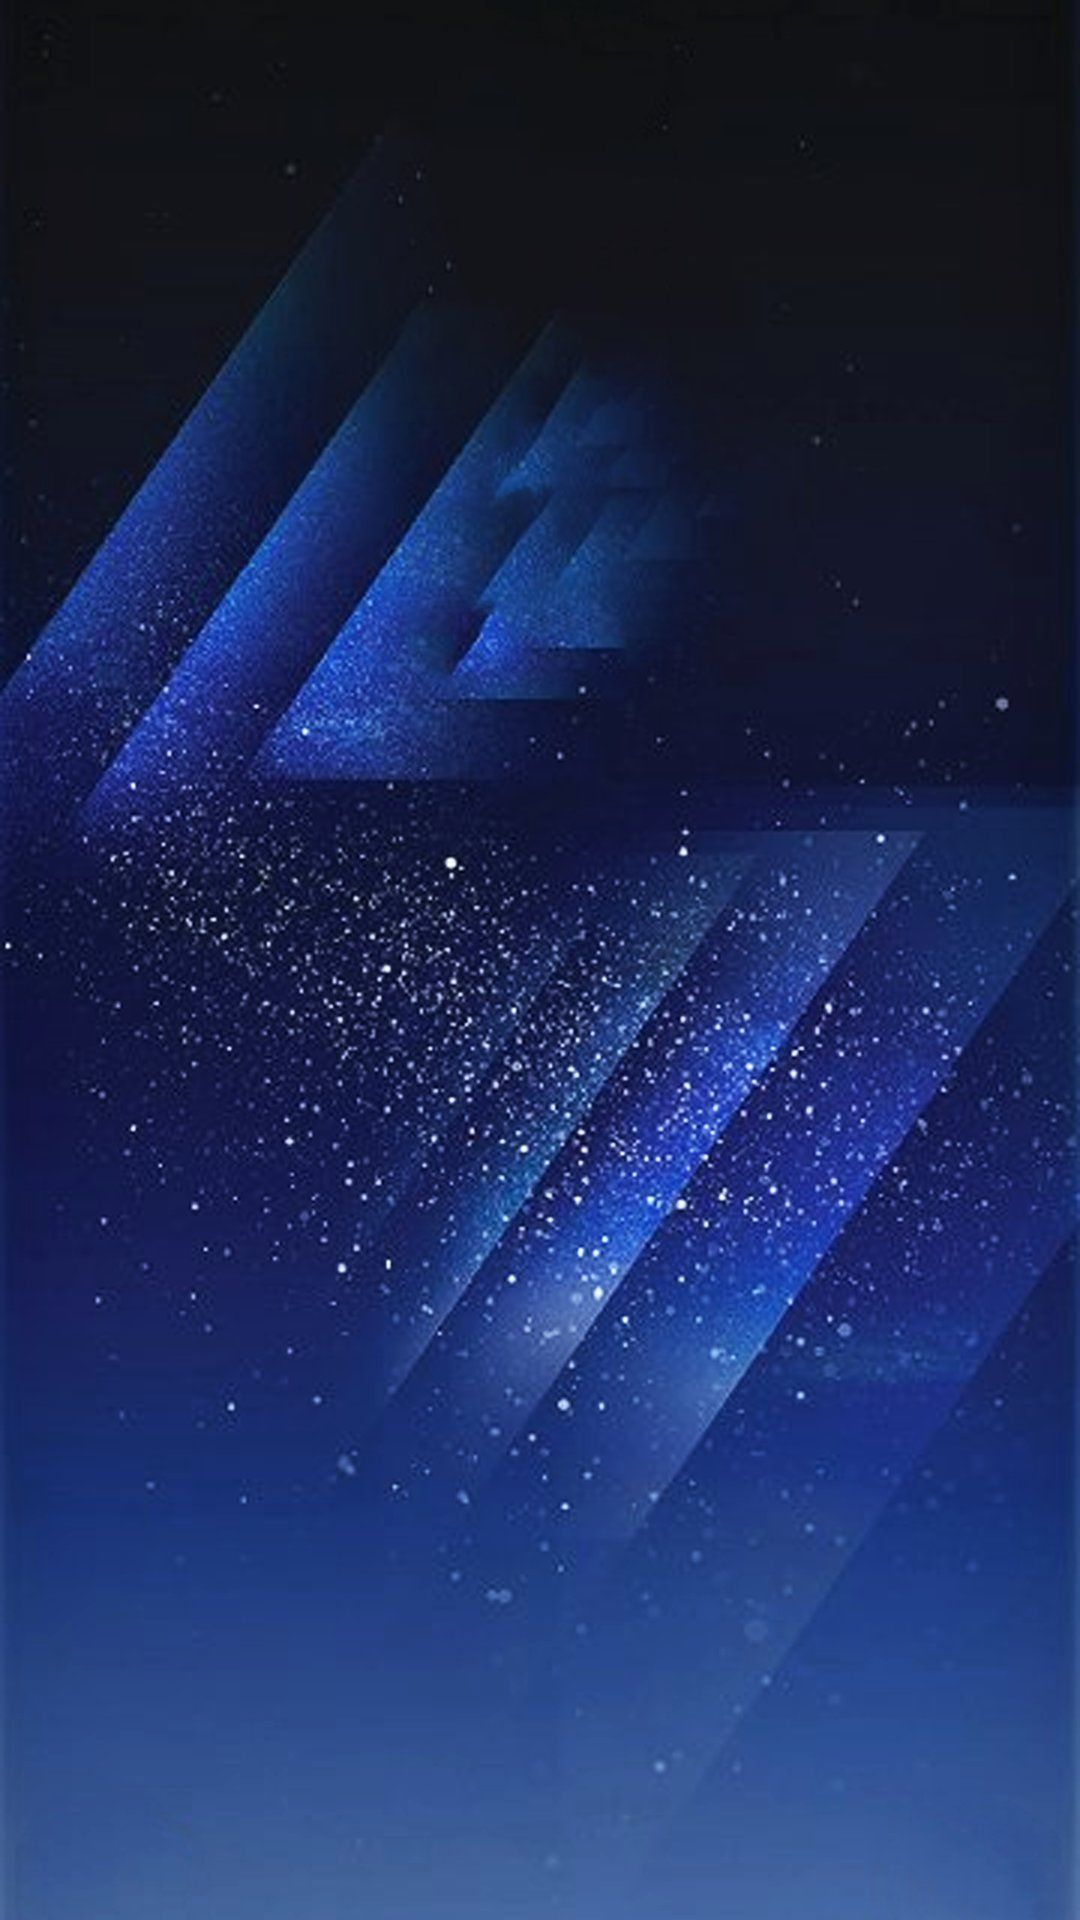 Samsung S8 Wallpapers Top Free Samsung S8 Backgrounds Wallpaperaccess